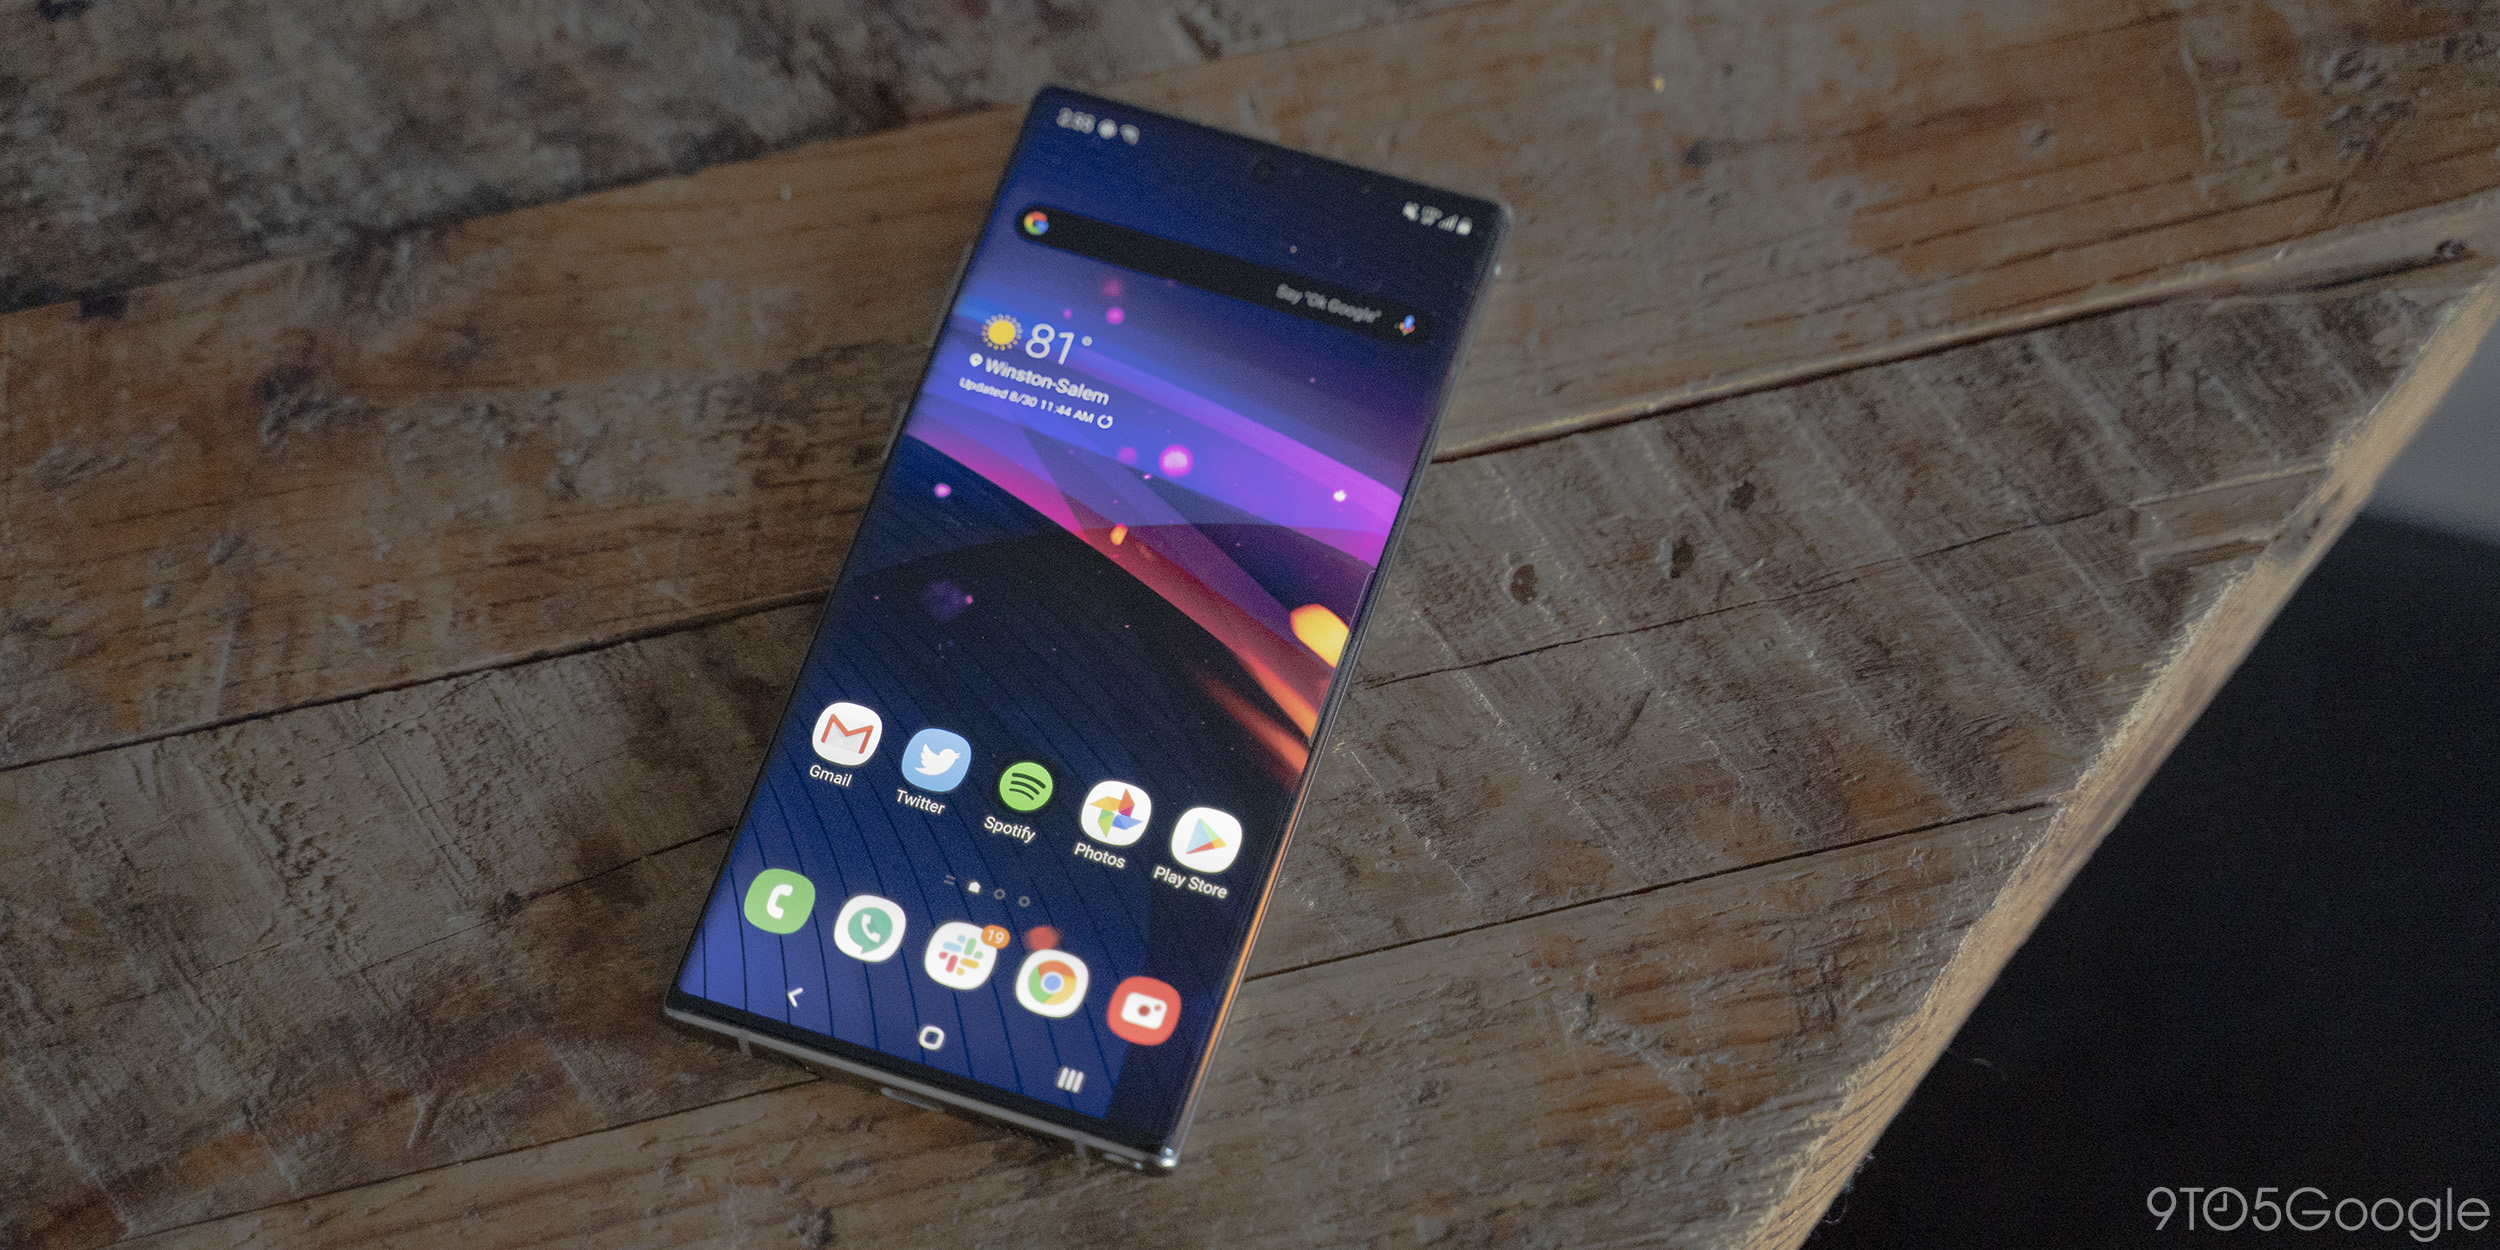 October 2019 security patch now rolling out for Galaxy S10, Note 10